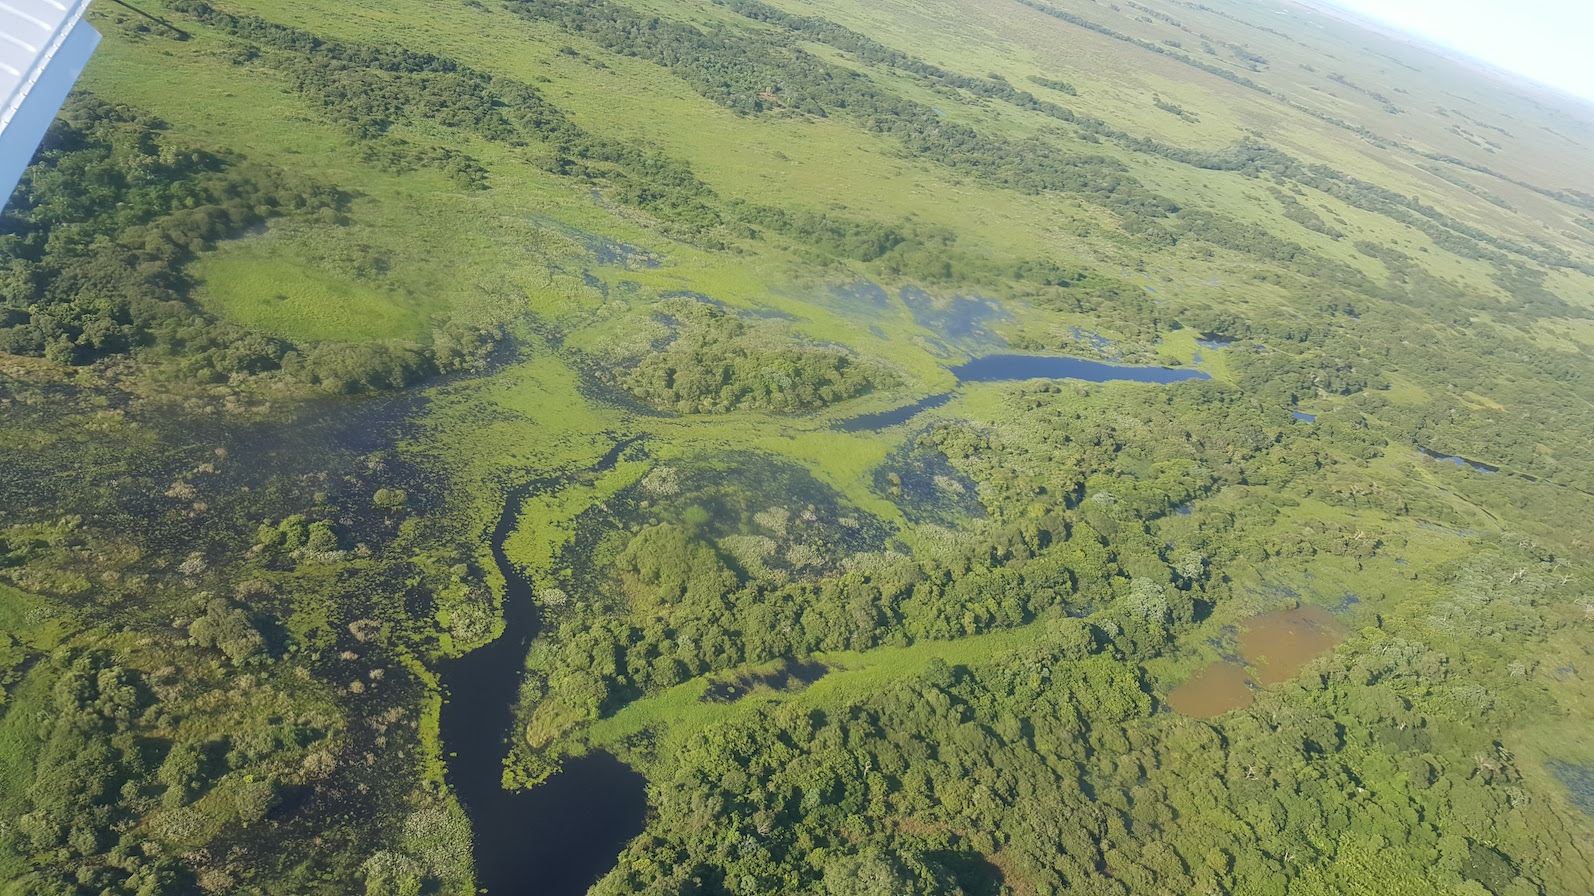 An area of flowing water in the Pantanal